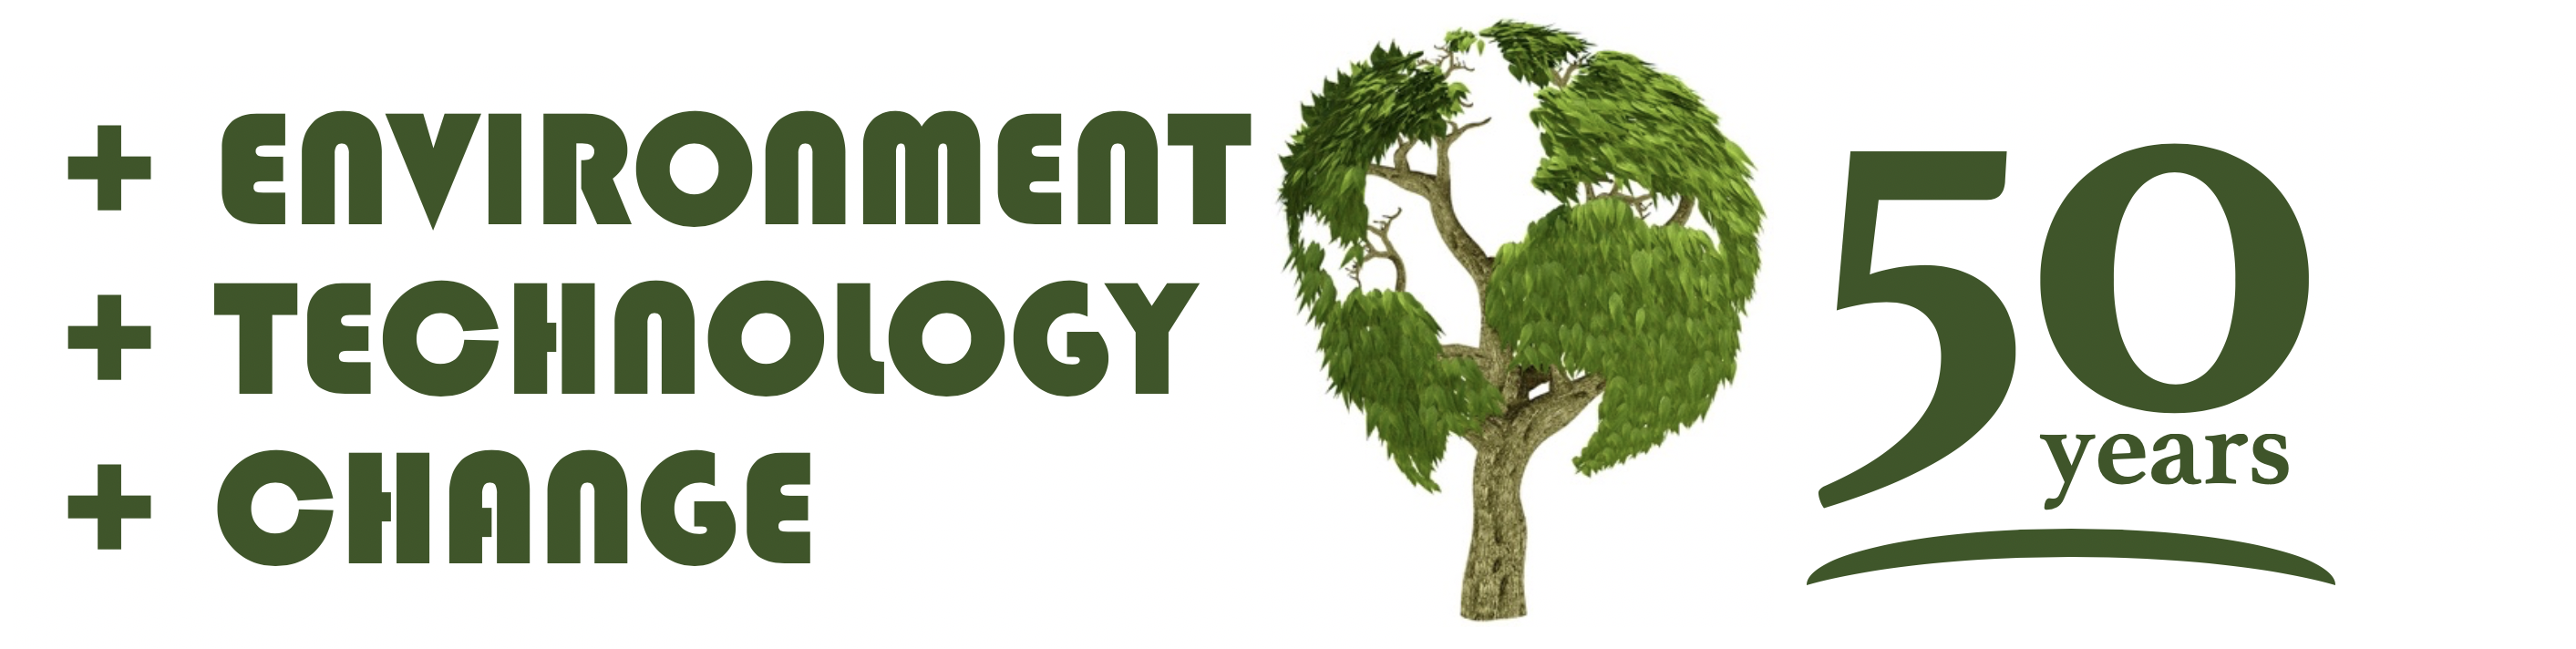 Advanced UK Environment Technology Change Earth Day 2020-1